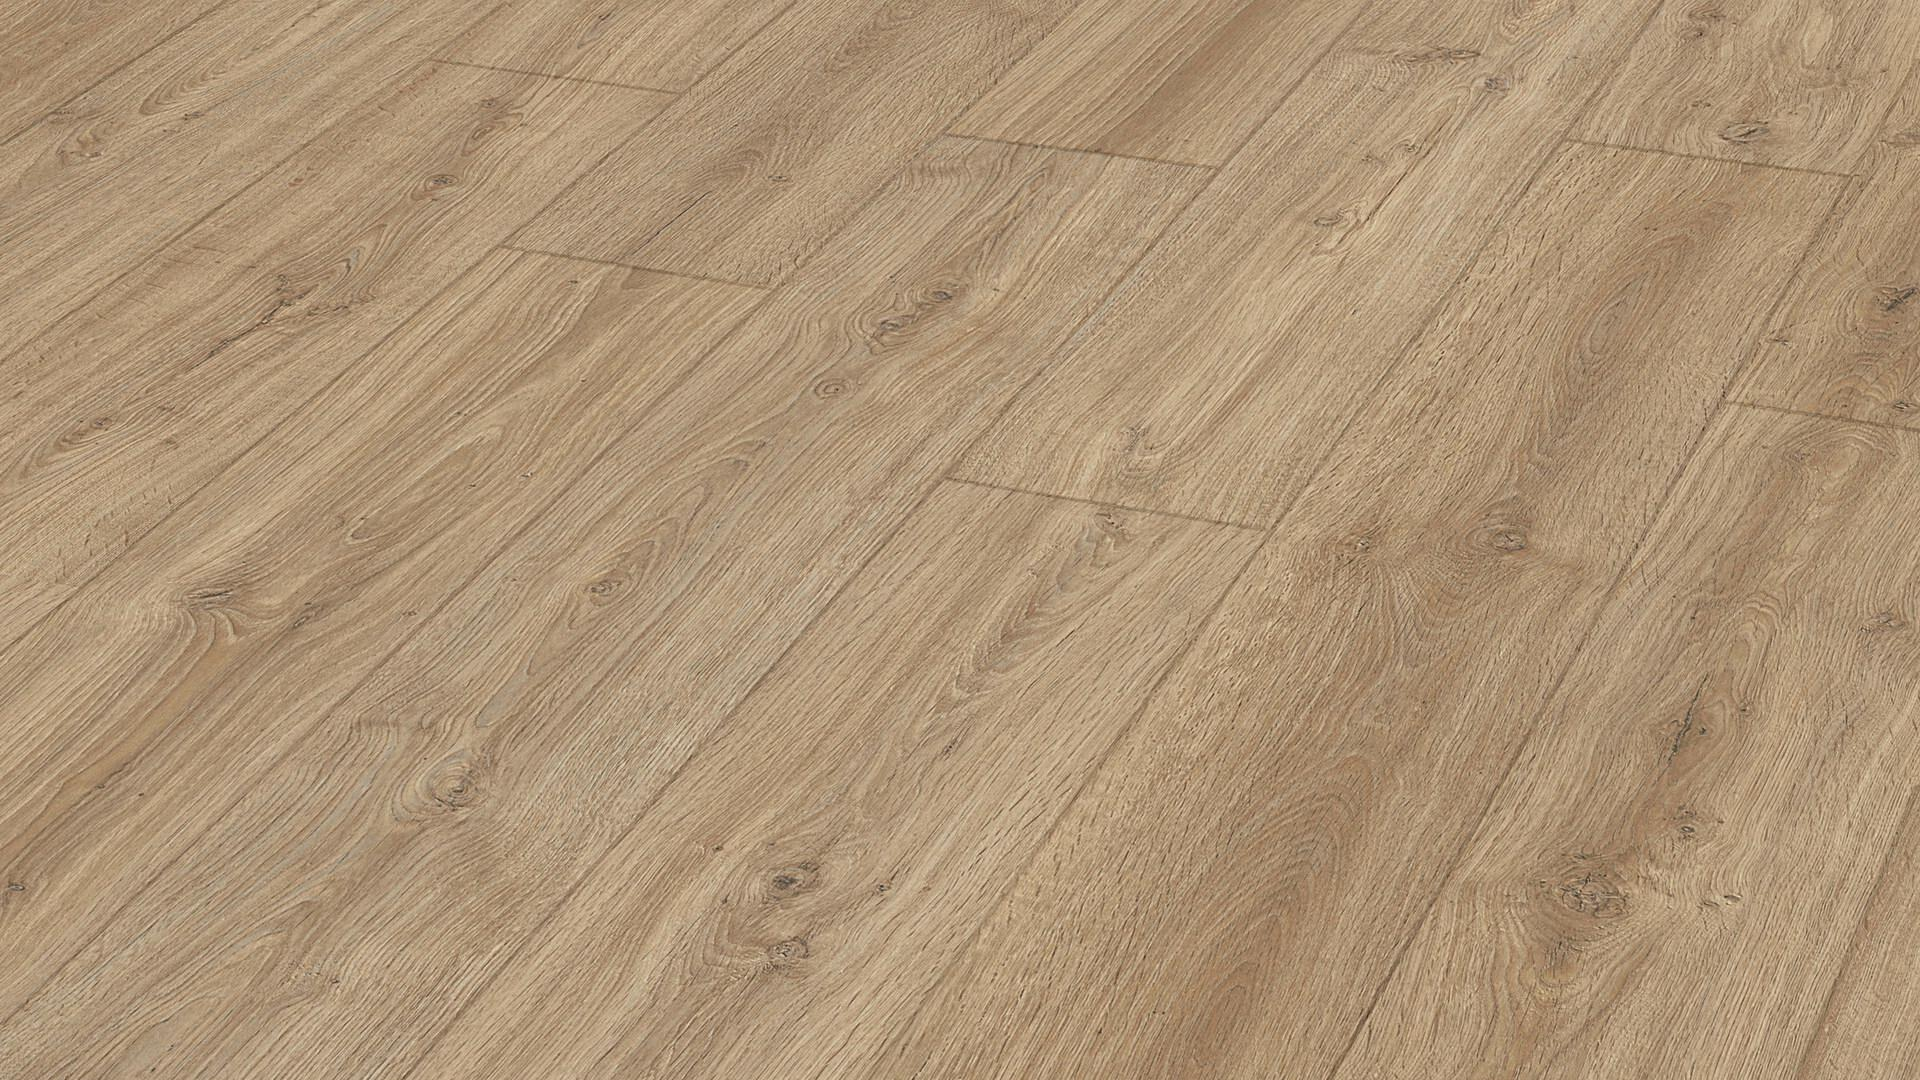 Design flooring MeisterDesign. next Edition M7 Casablanca oak 6414